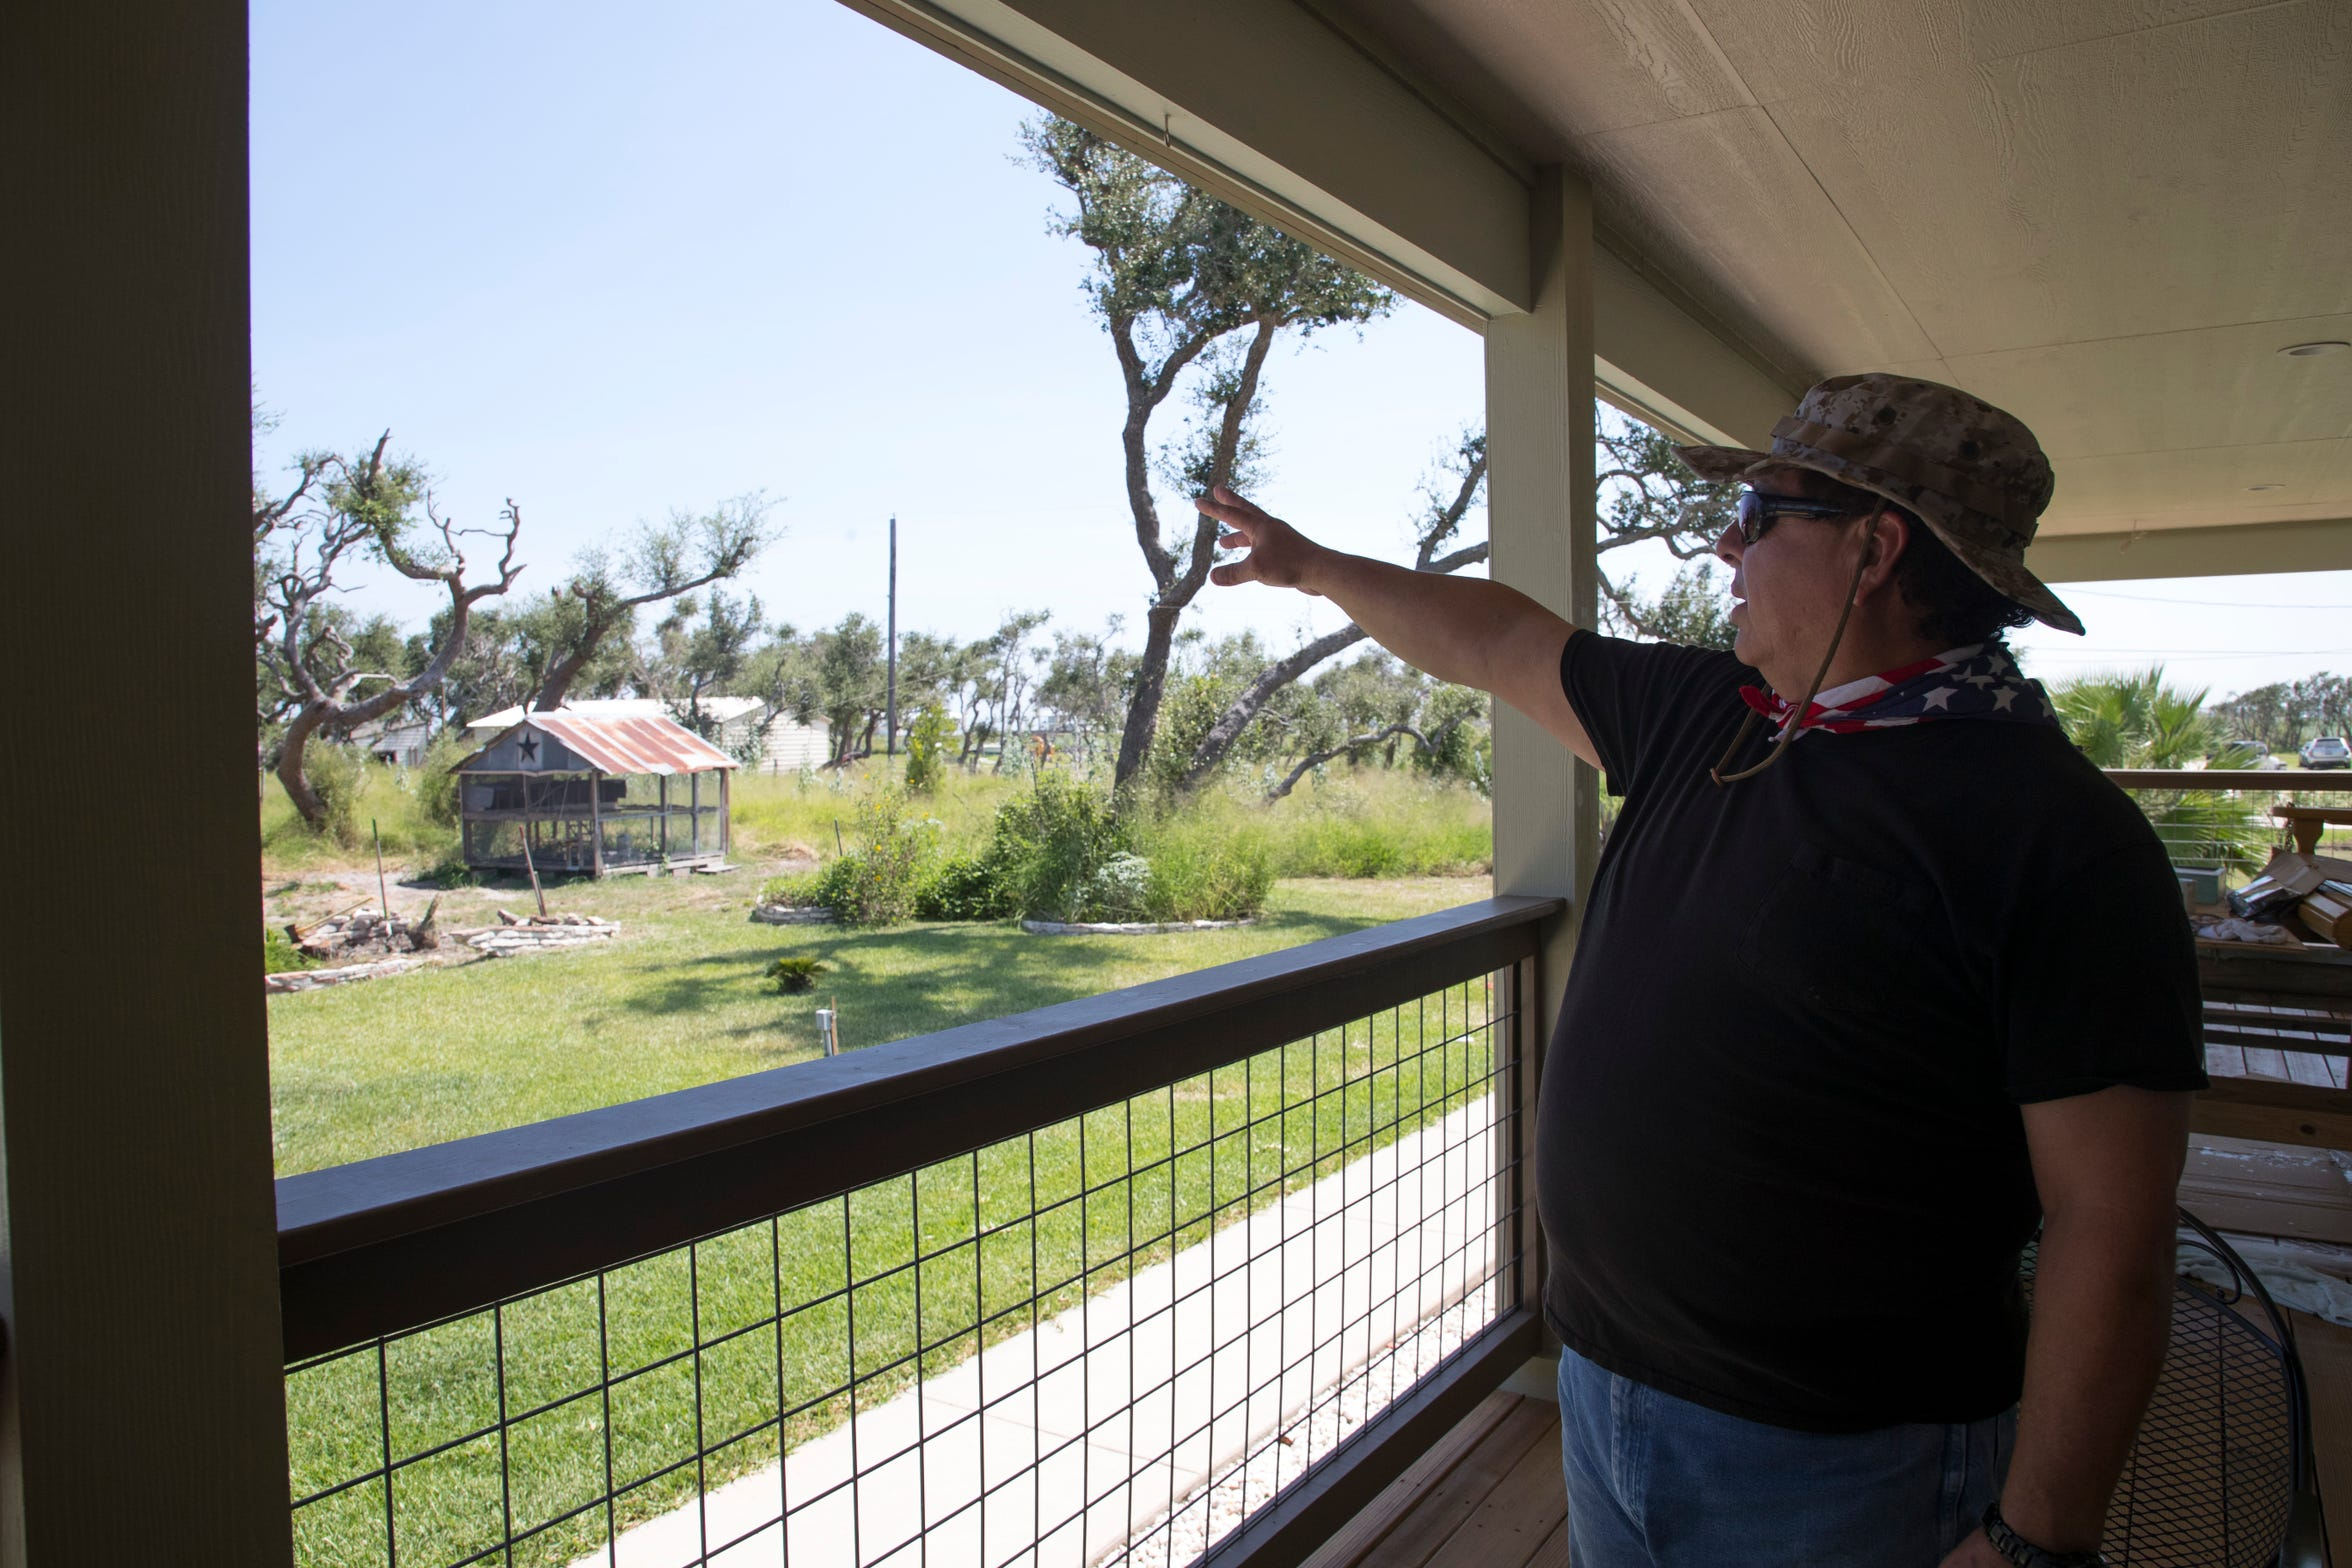 Carlos Casas walks around his property that was severely damaged during Hurricane Harvey,  on Sunday, August, 19, 2018 in Rockport.